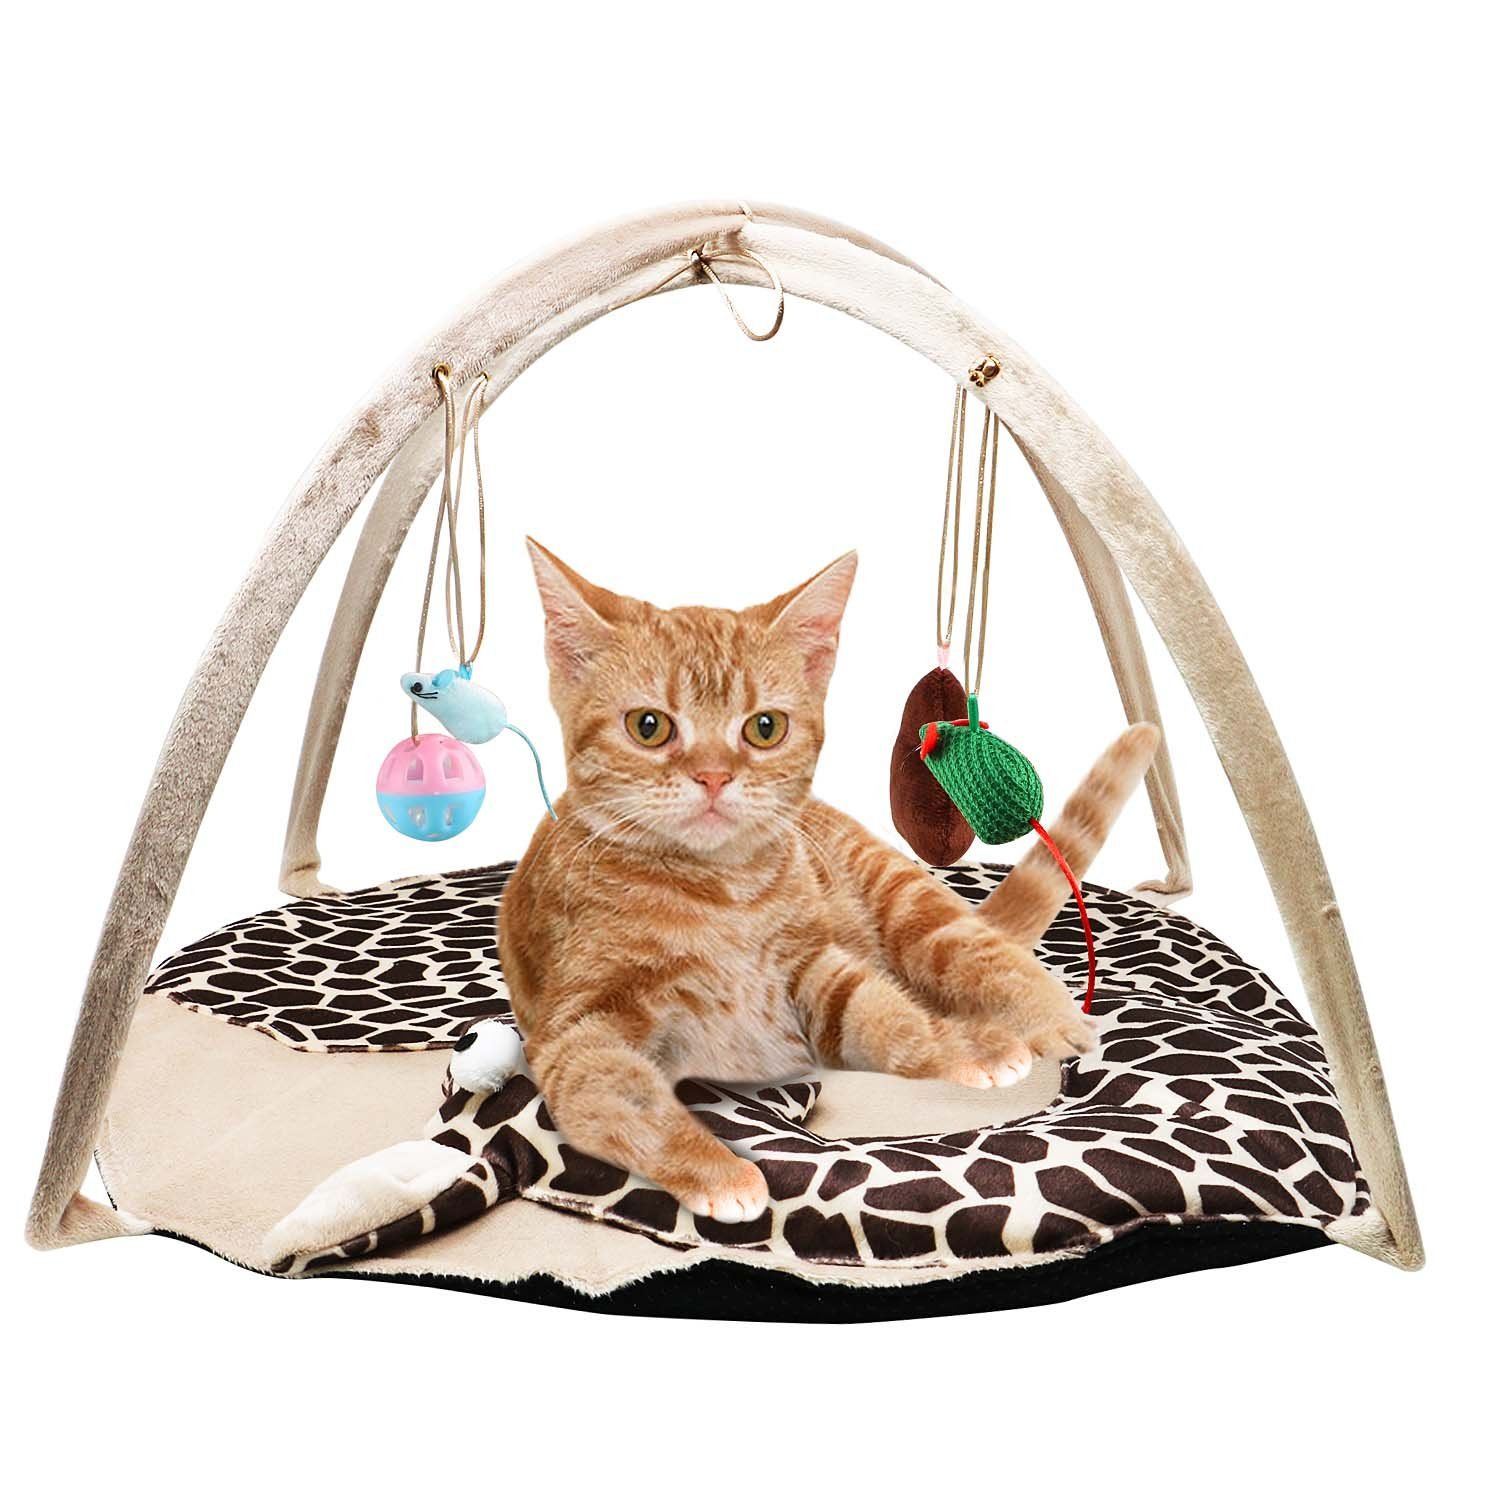 B Bascolor Cat Play Mat Bed with 4 Hanging Toys Bell Balls Crinkle Toy for Cats Kitten by B Bascolor